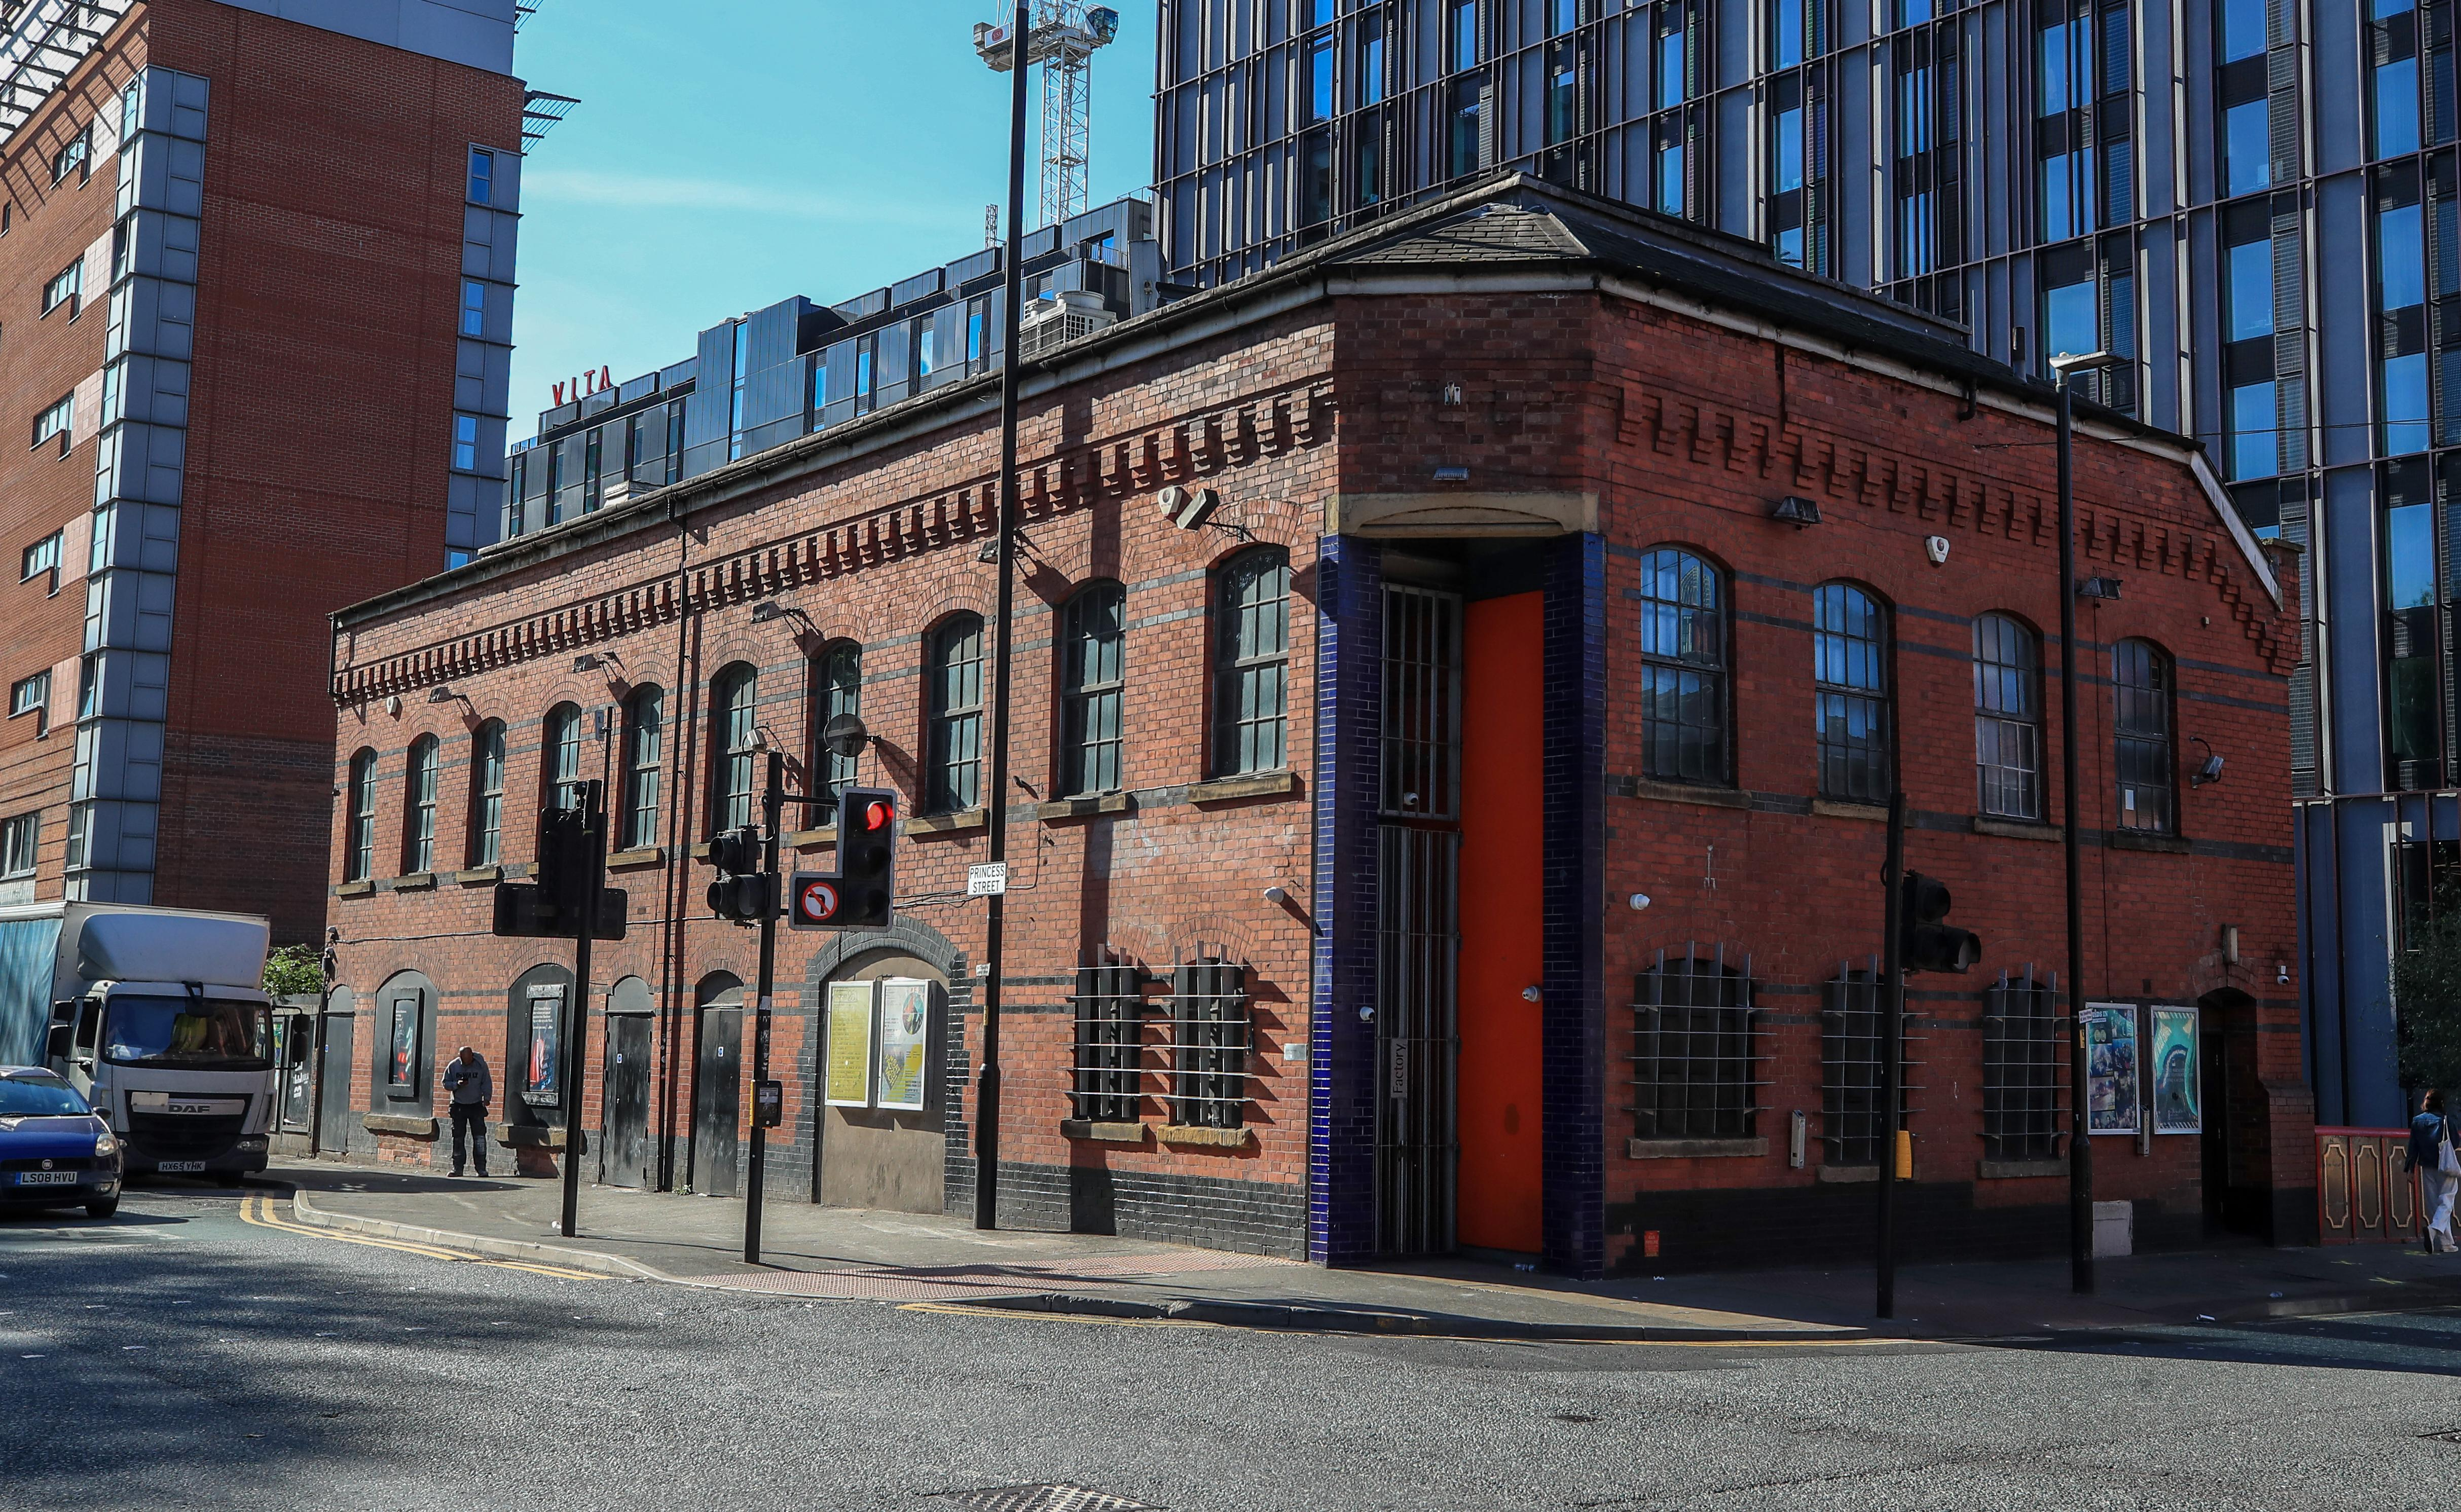 A general view of the night club The Factory in Manchester where Reynhard Sinaga watched and picked up men that he later raped. Sinaga, 36, has been jailed at Manchester Crown Court for life and must serve a minimum of 30 years after he was convicted of offences against 48 men. (Photo by Peter Byrne/PA Images via Getty Images)